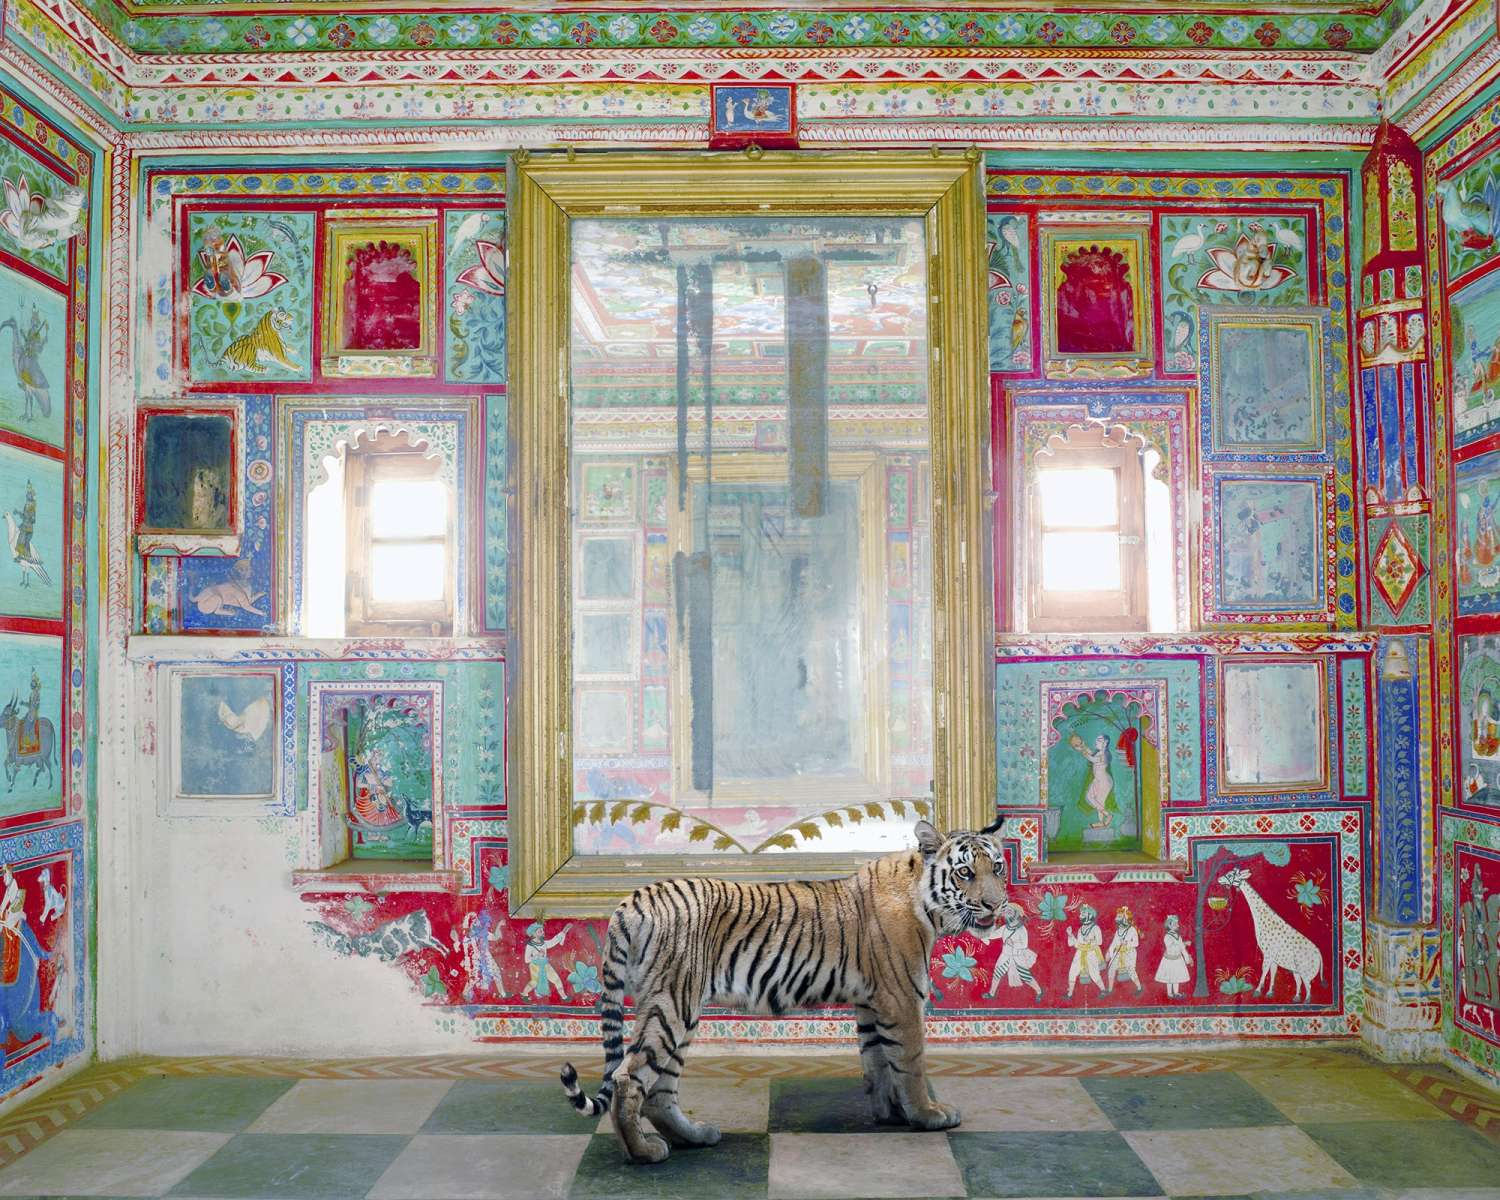 Opening October 6th — Karen Knorr, Dennis Dinneen, and Susan Worsham